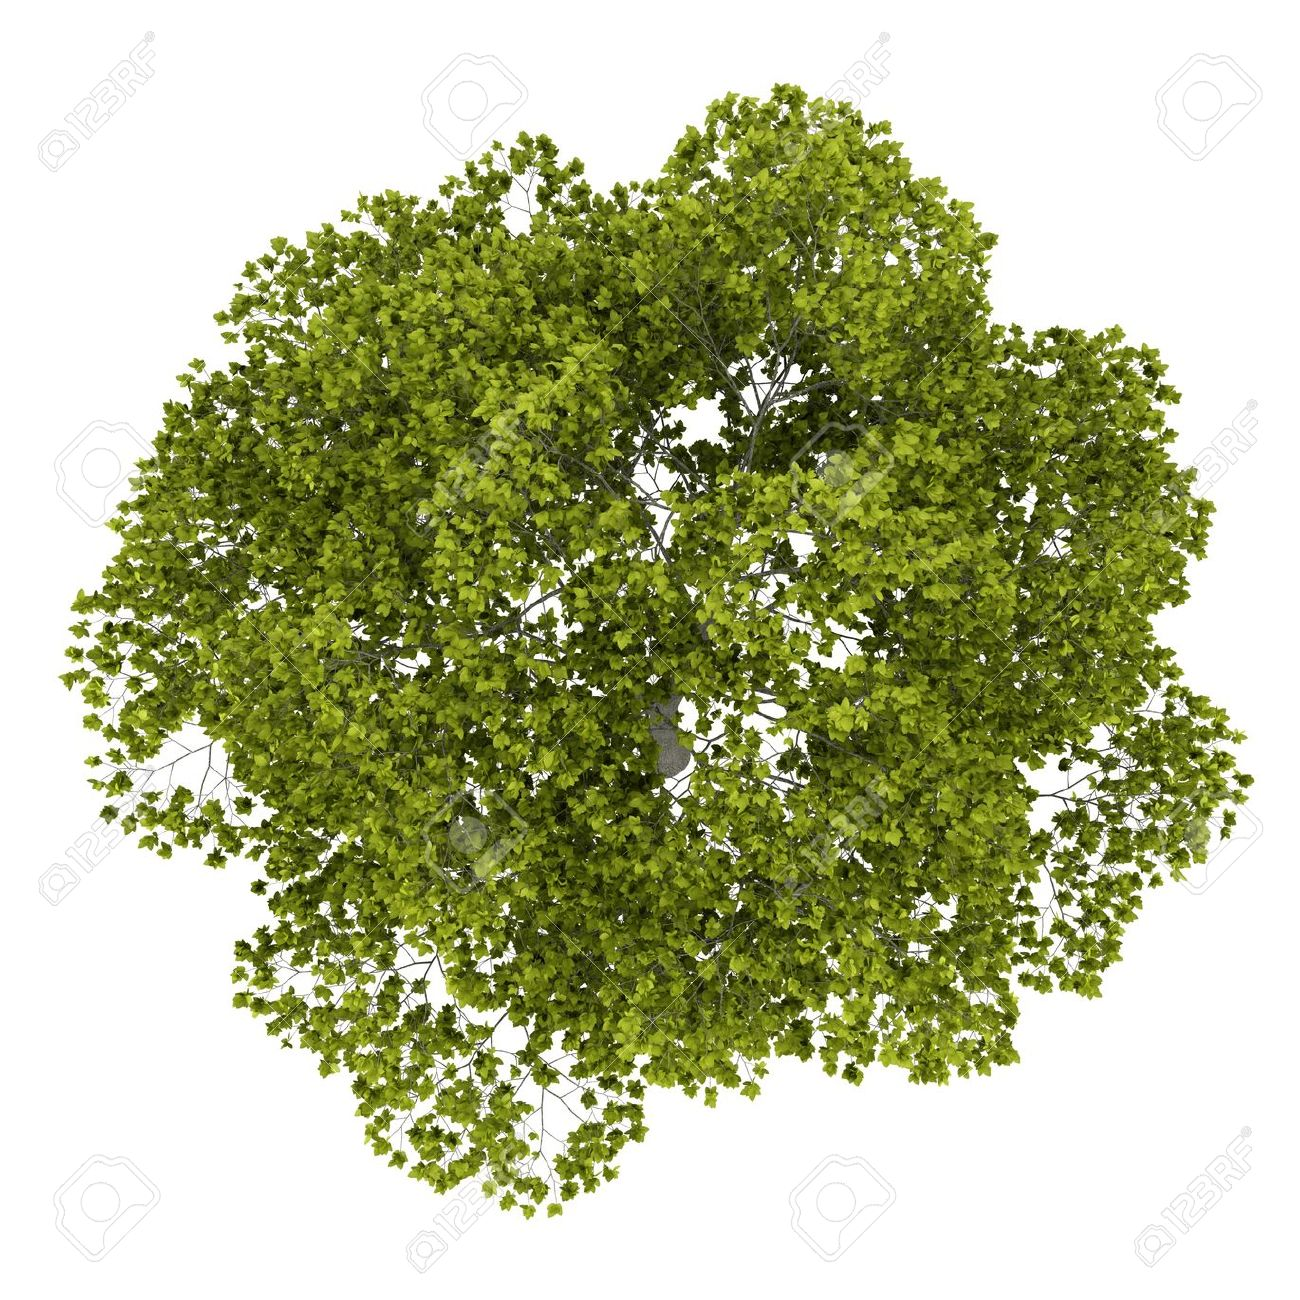 Tree Top Png image #4128